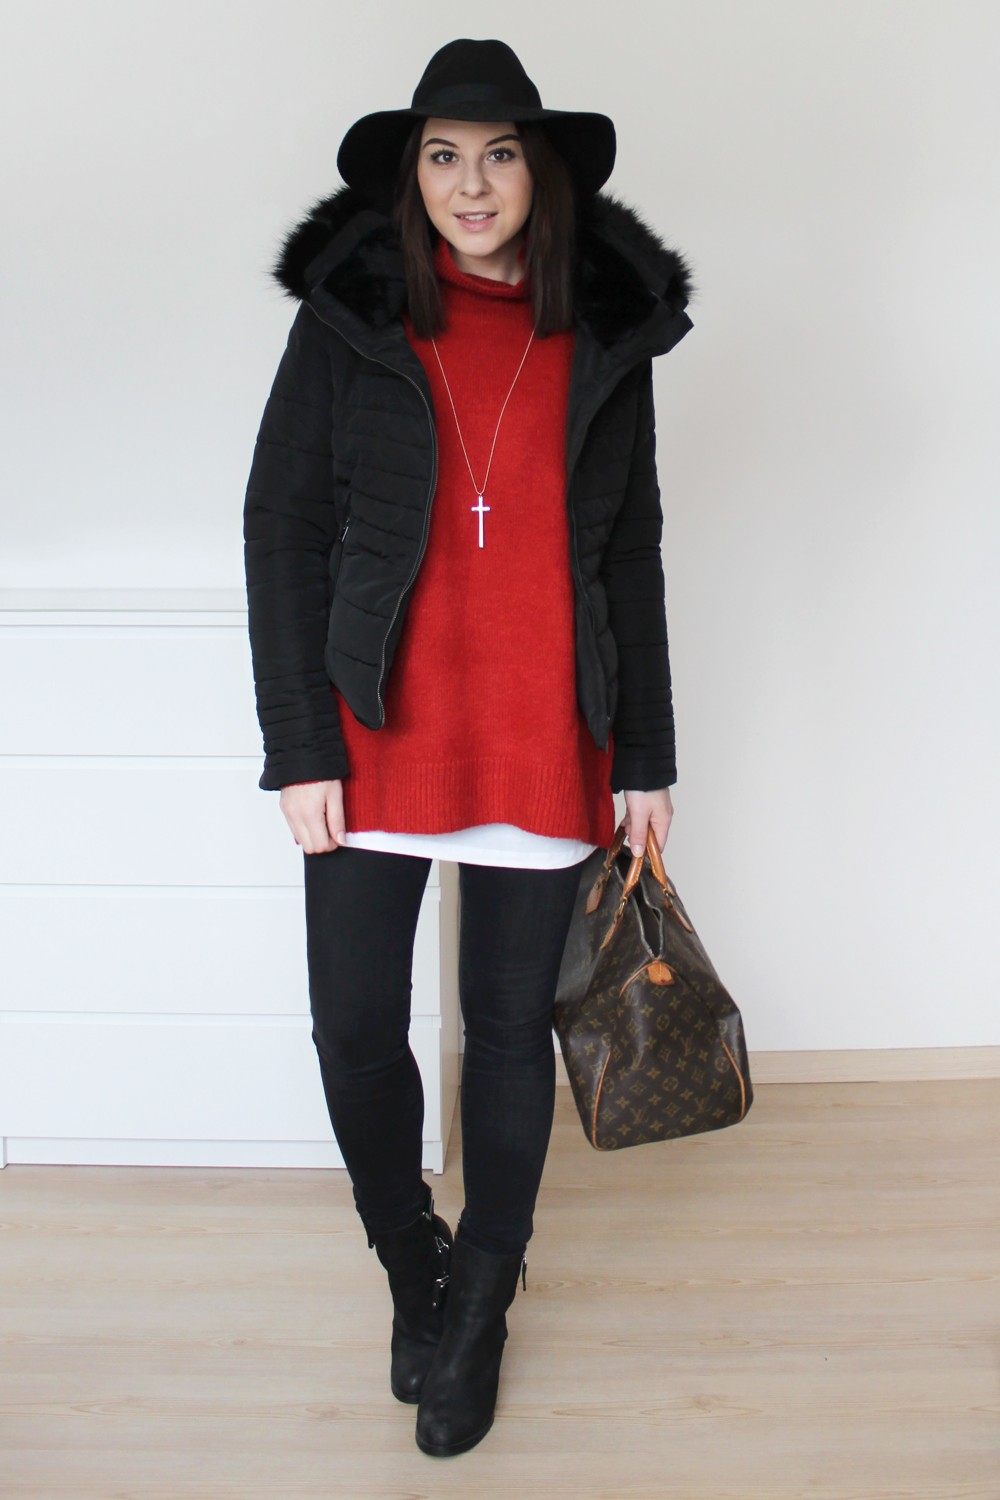 who is mocca, fashionblog tirol, blogger tirol, beautyblog, interiorblog, lifestyleblog, weekly wardrobe review, ootd